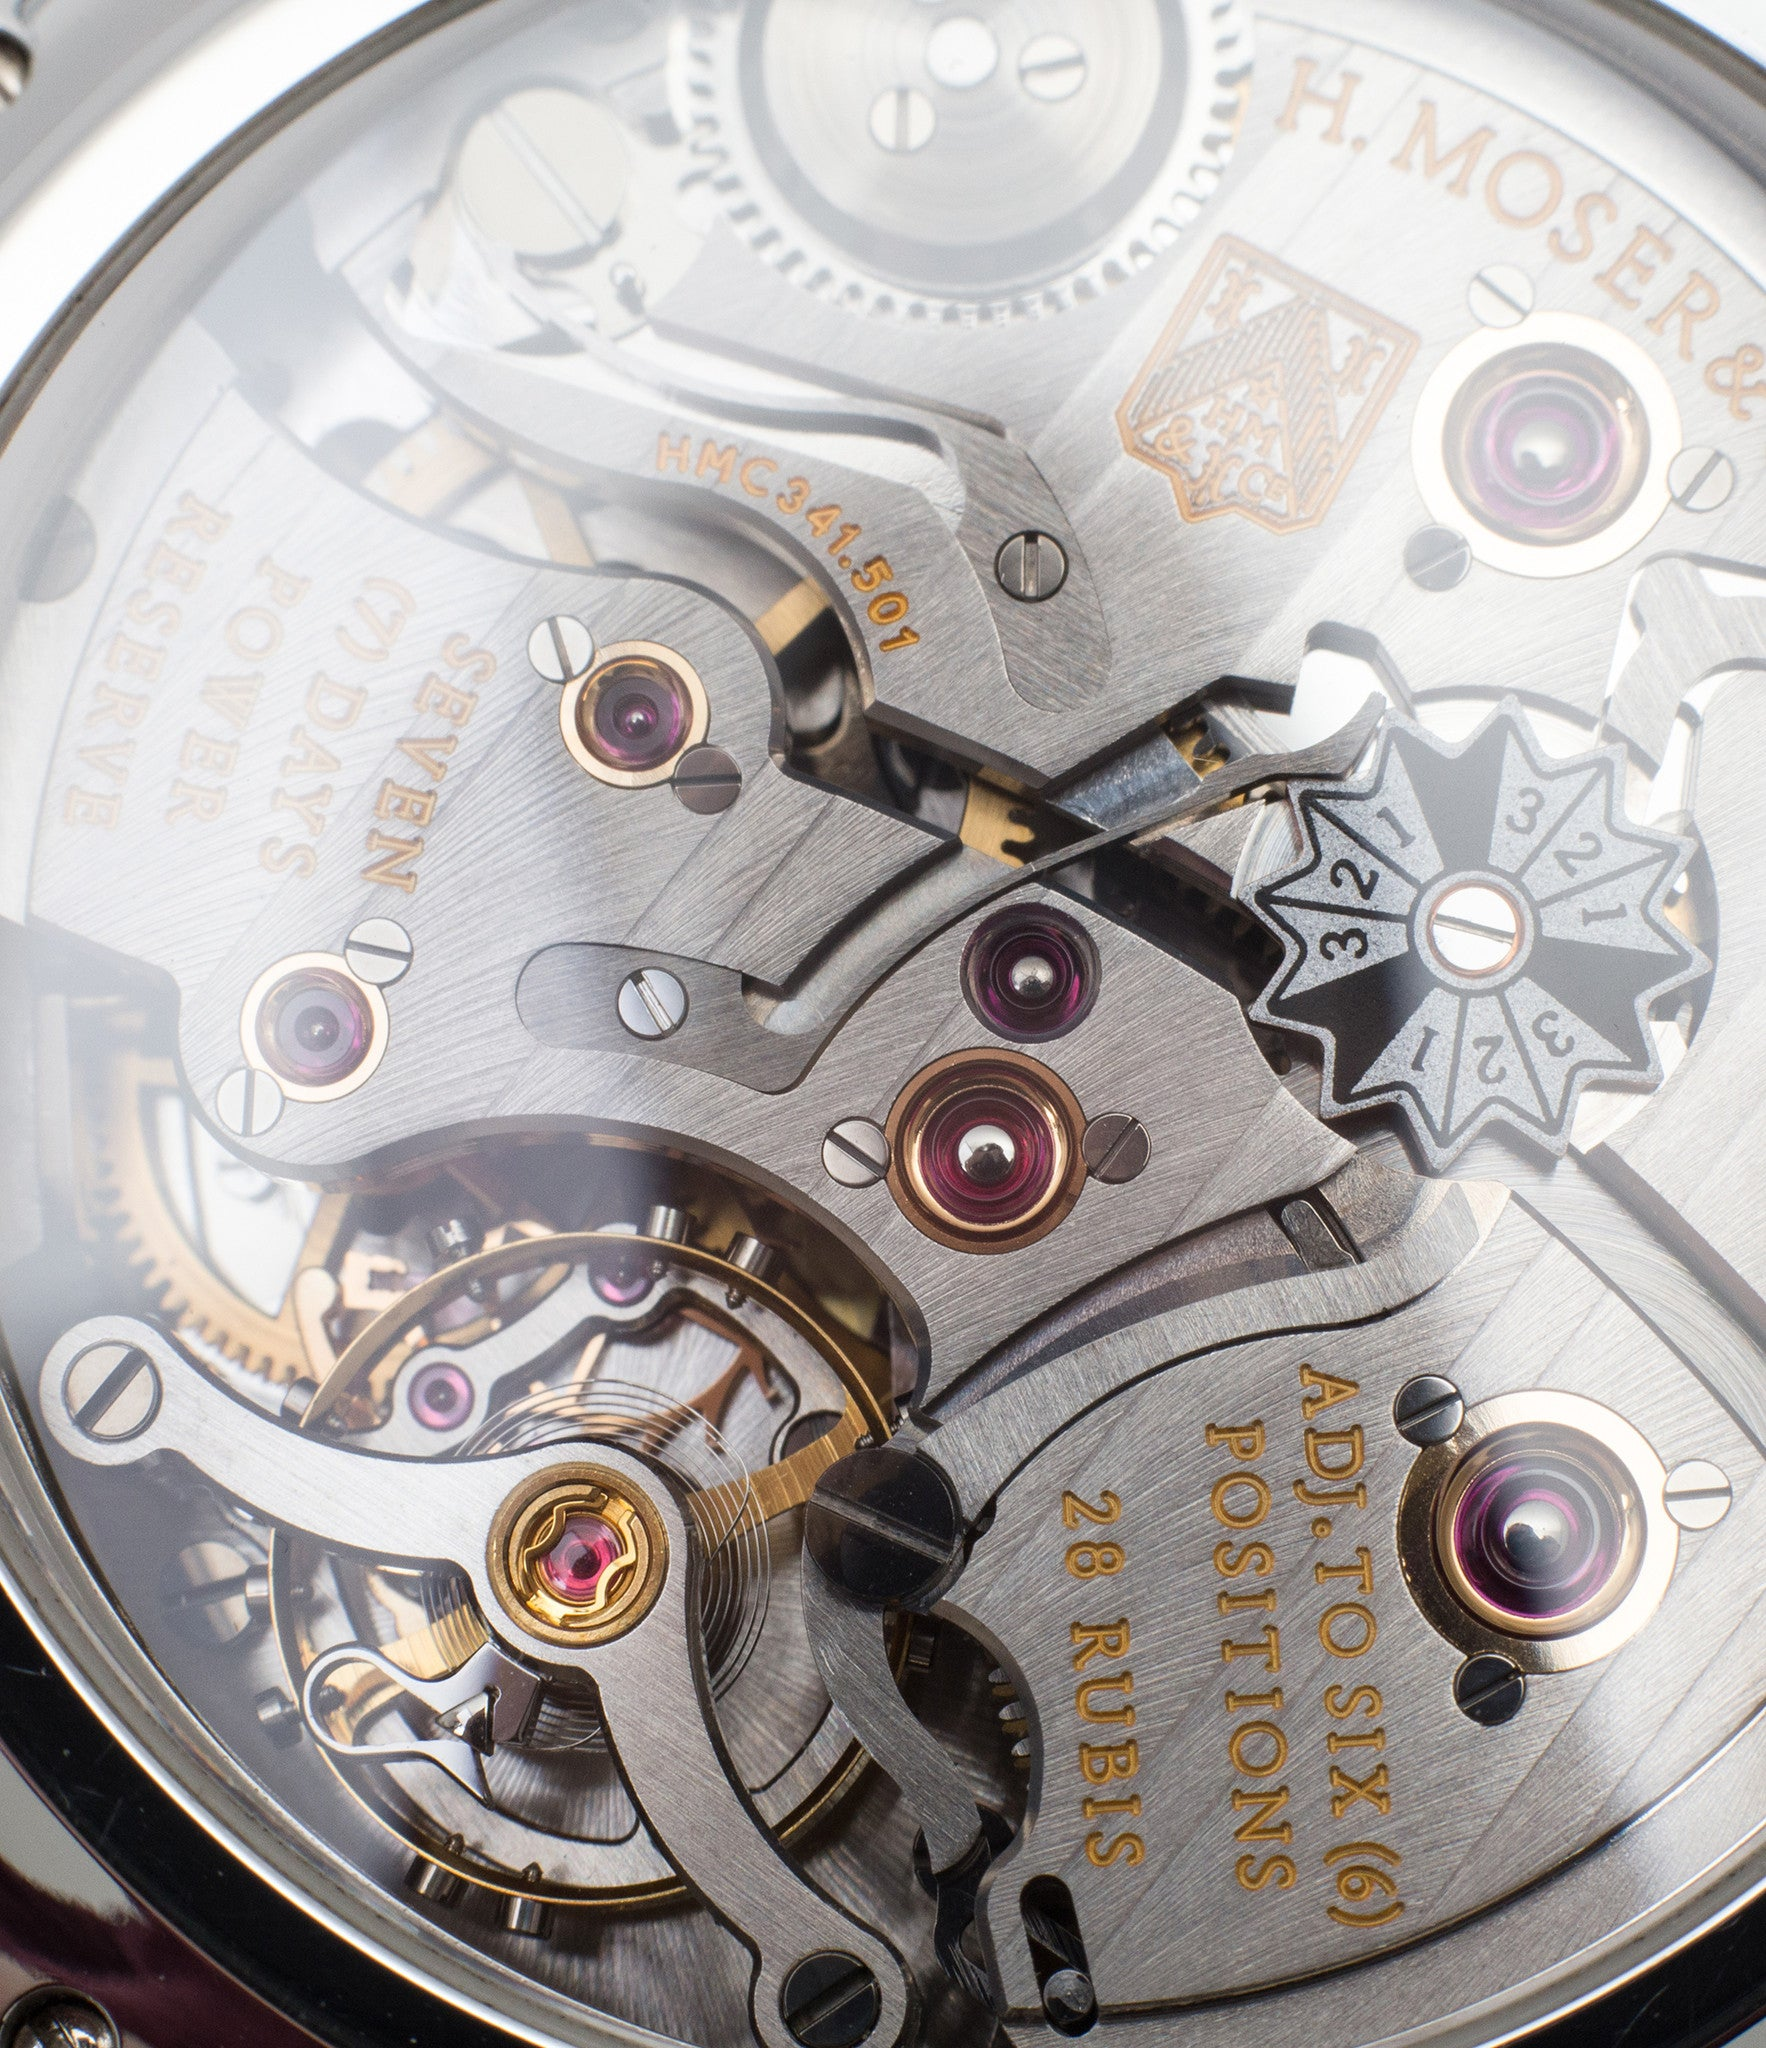 movement H. Moser & Cie. Perpetual Calendar 1341 platinum preowned watch at A Collected Man